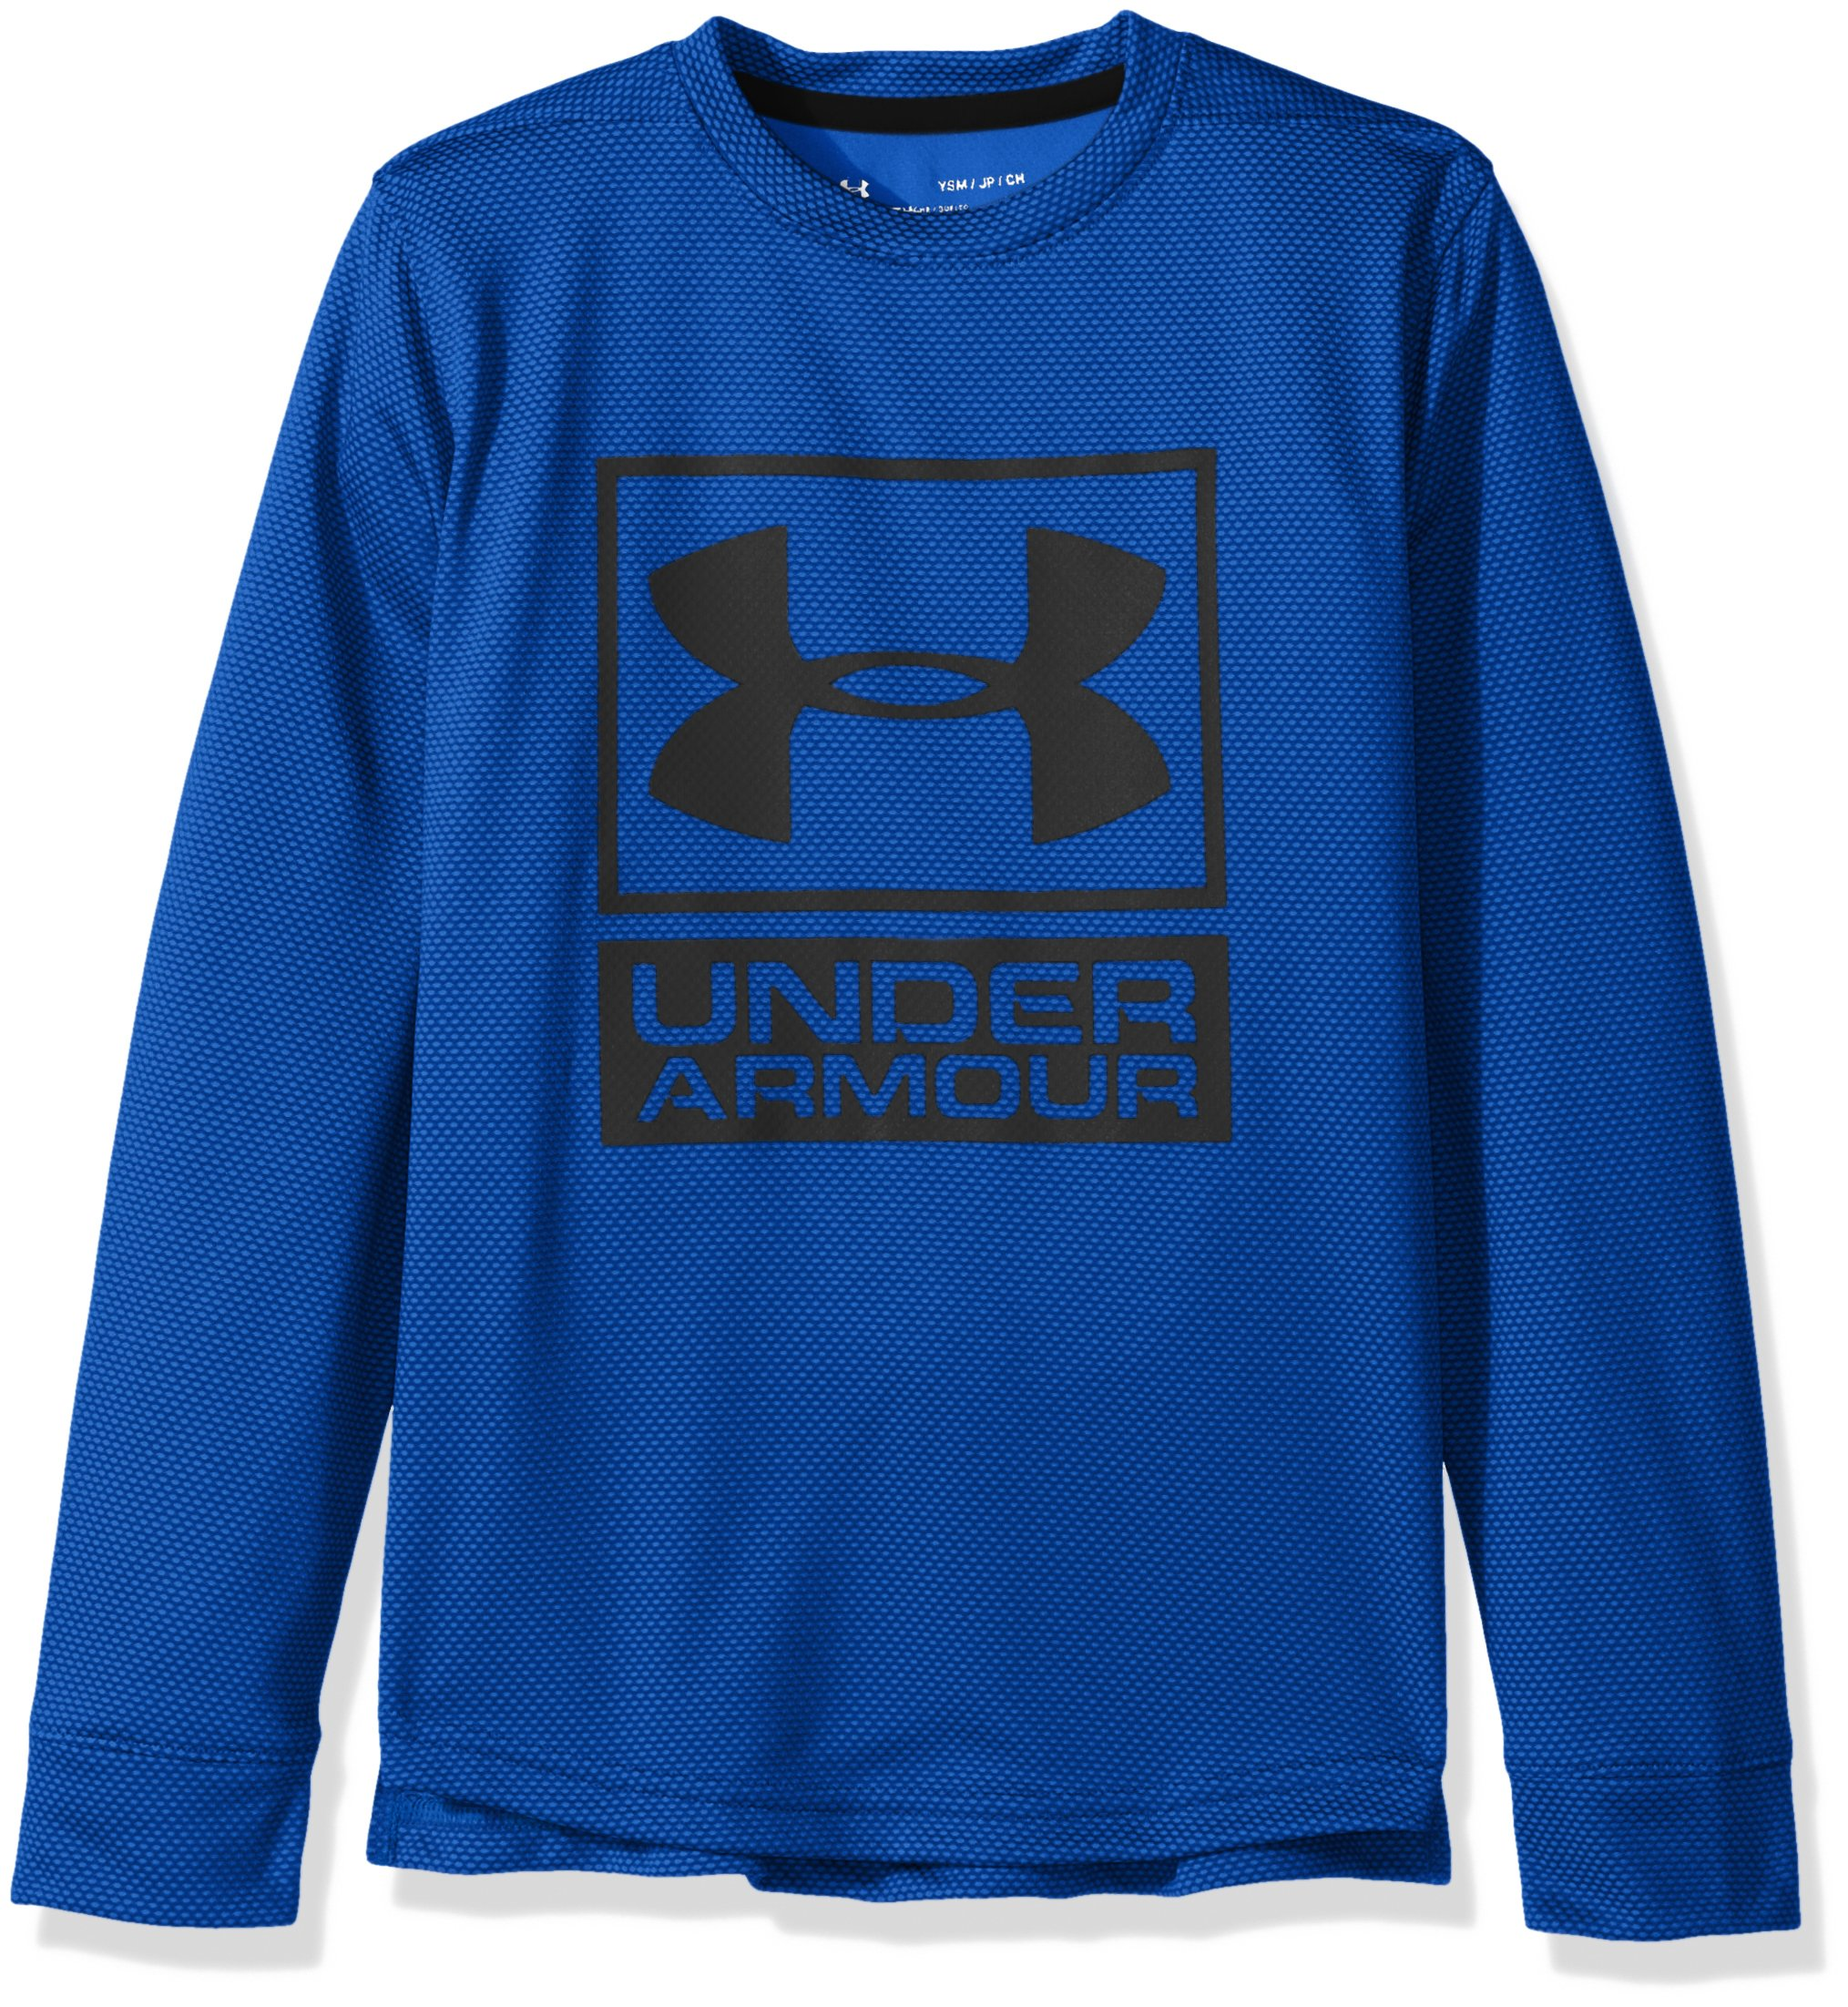 Under Armour Boys' Tech Textured Crew,Ultra Blue /Black, Youth Medium